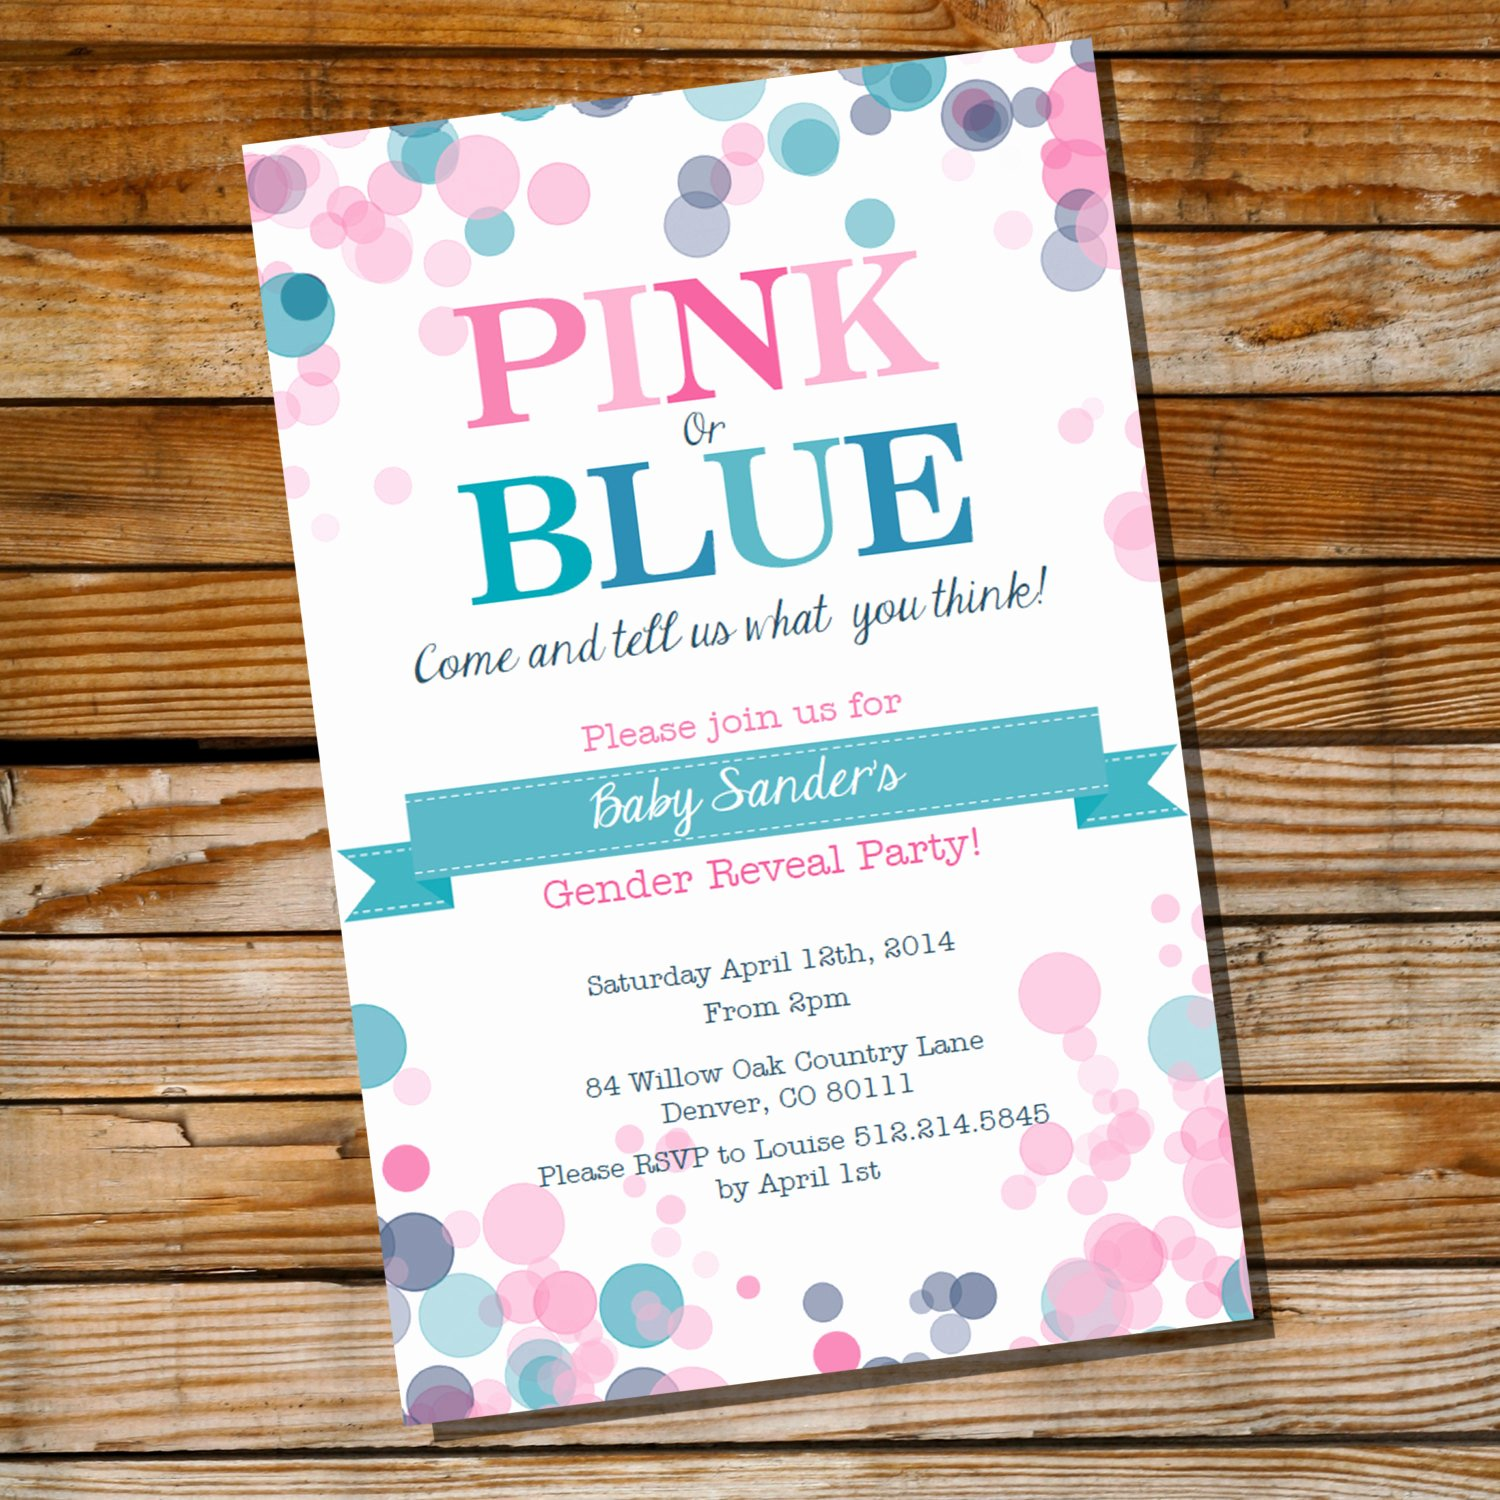 Gender Reveal Party Invitation Ideas Inspirational Gender Reveal Party Invitation Pink or Blue Instantly